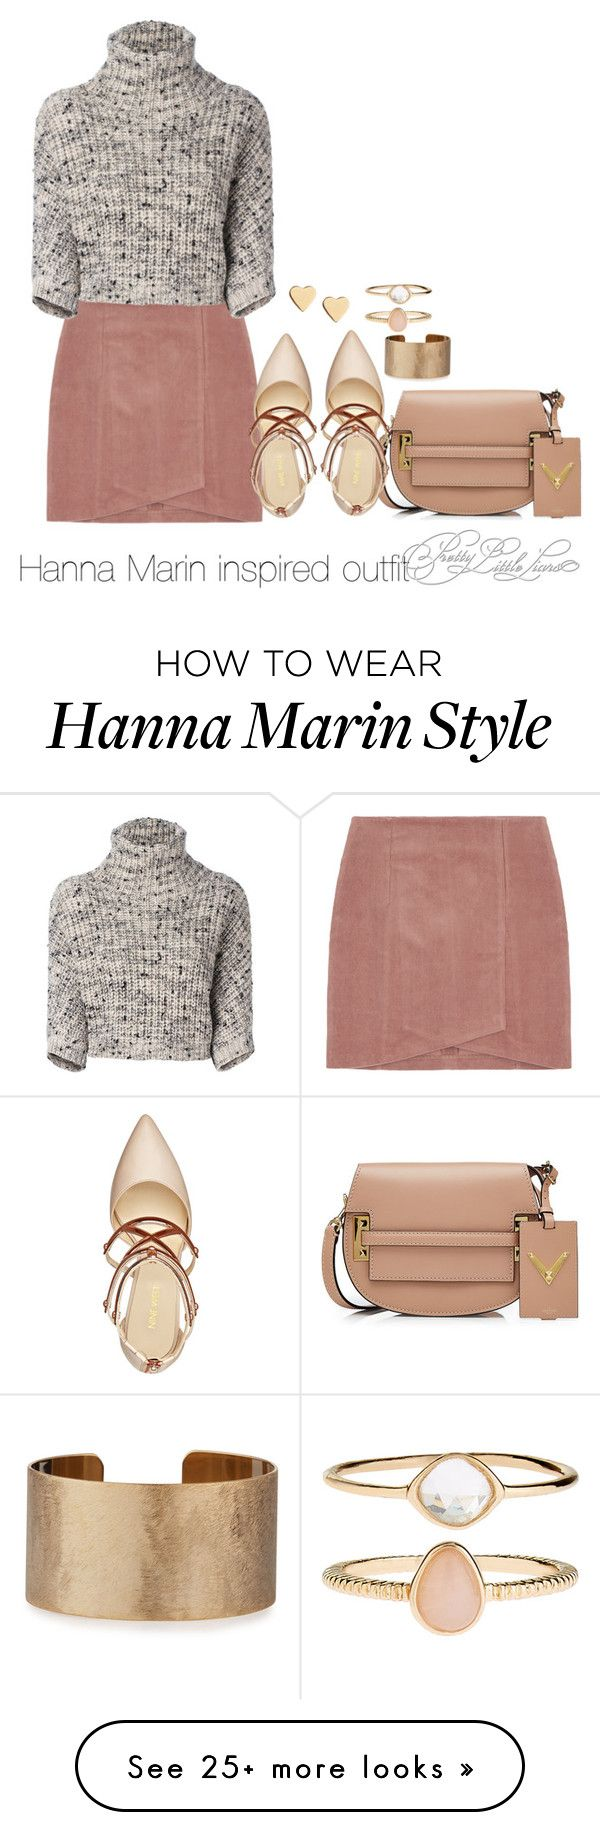 """Hanna Marin inspired outfit/PLL"" by tvdsarahmichele on Polyvore featuring Brunello Cucinelli, Valentino, Nine West, Lipsy, Panacea and Accessorize"